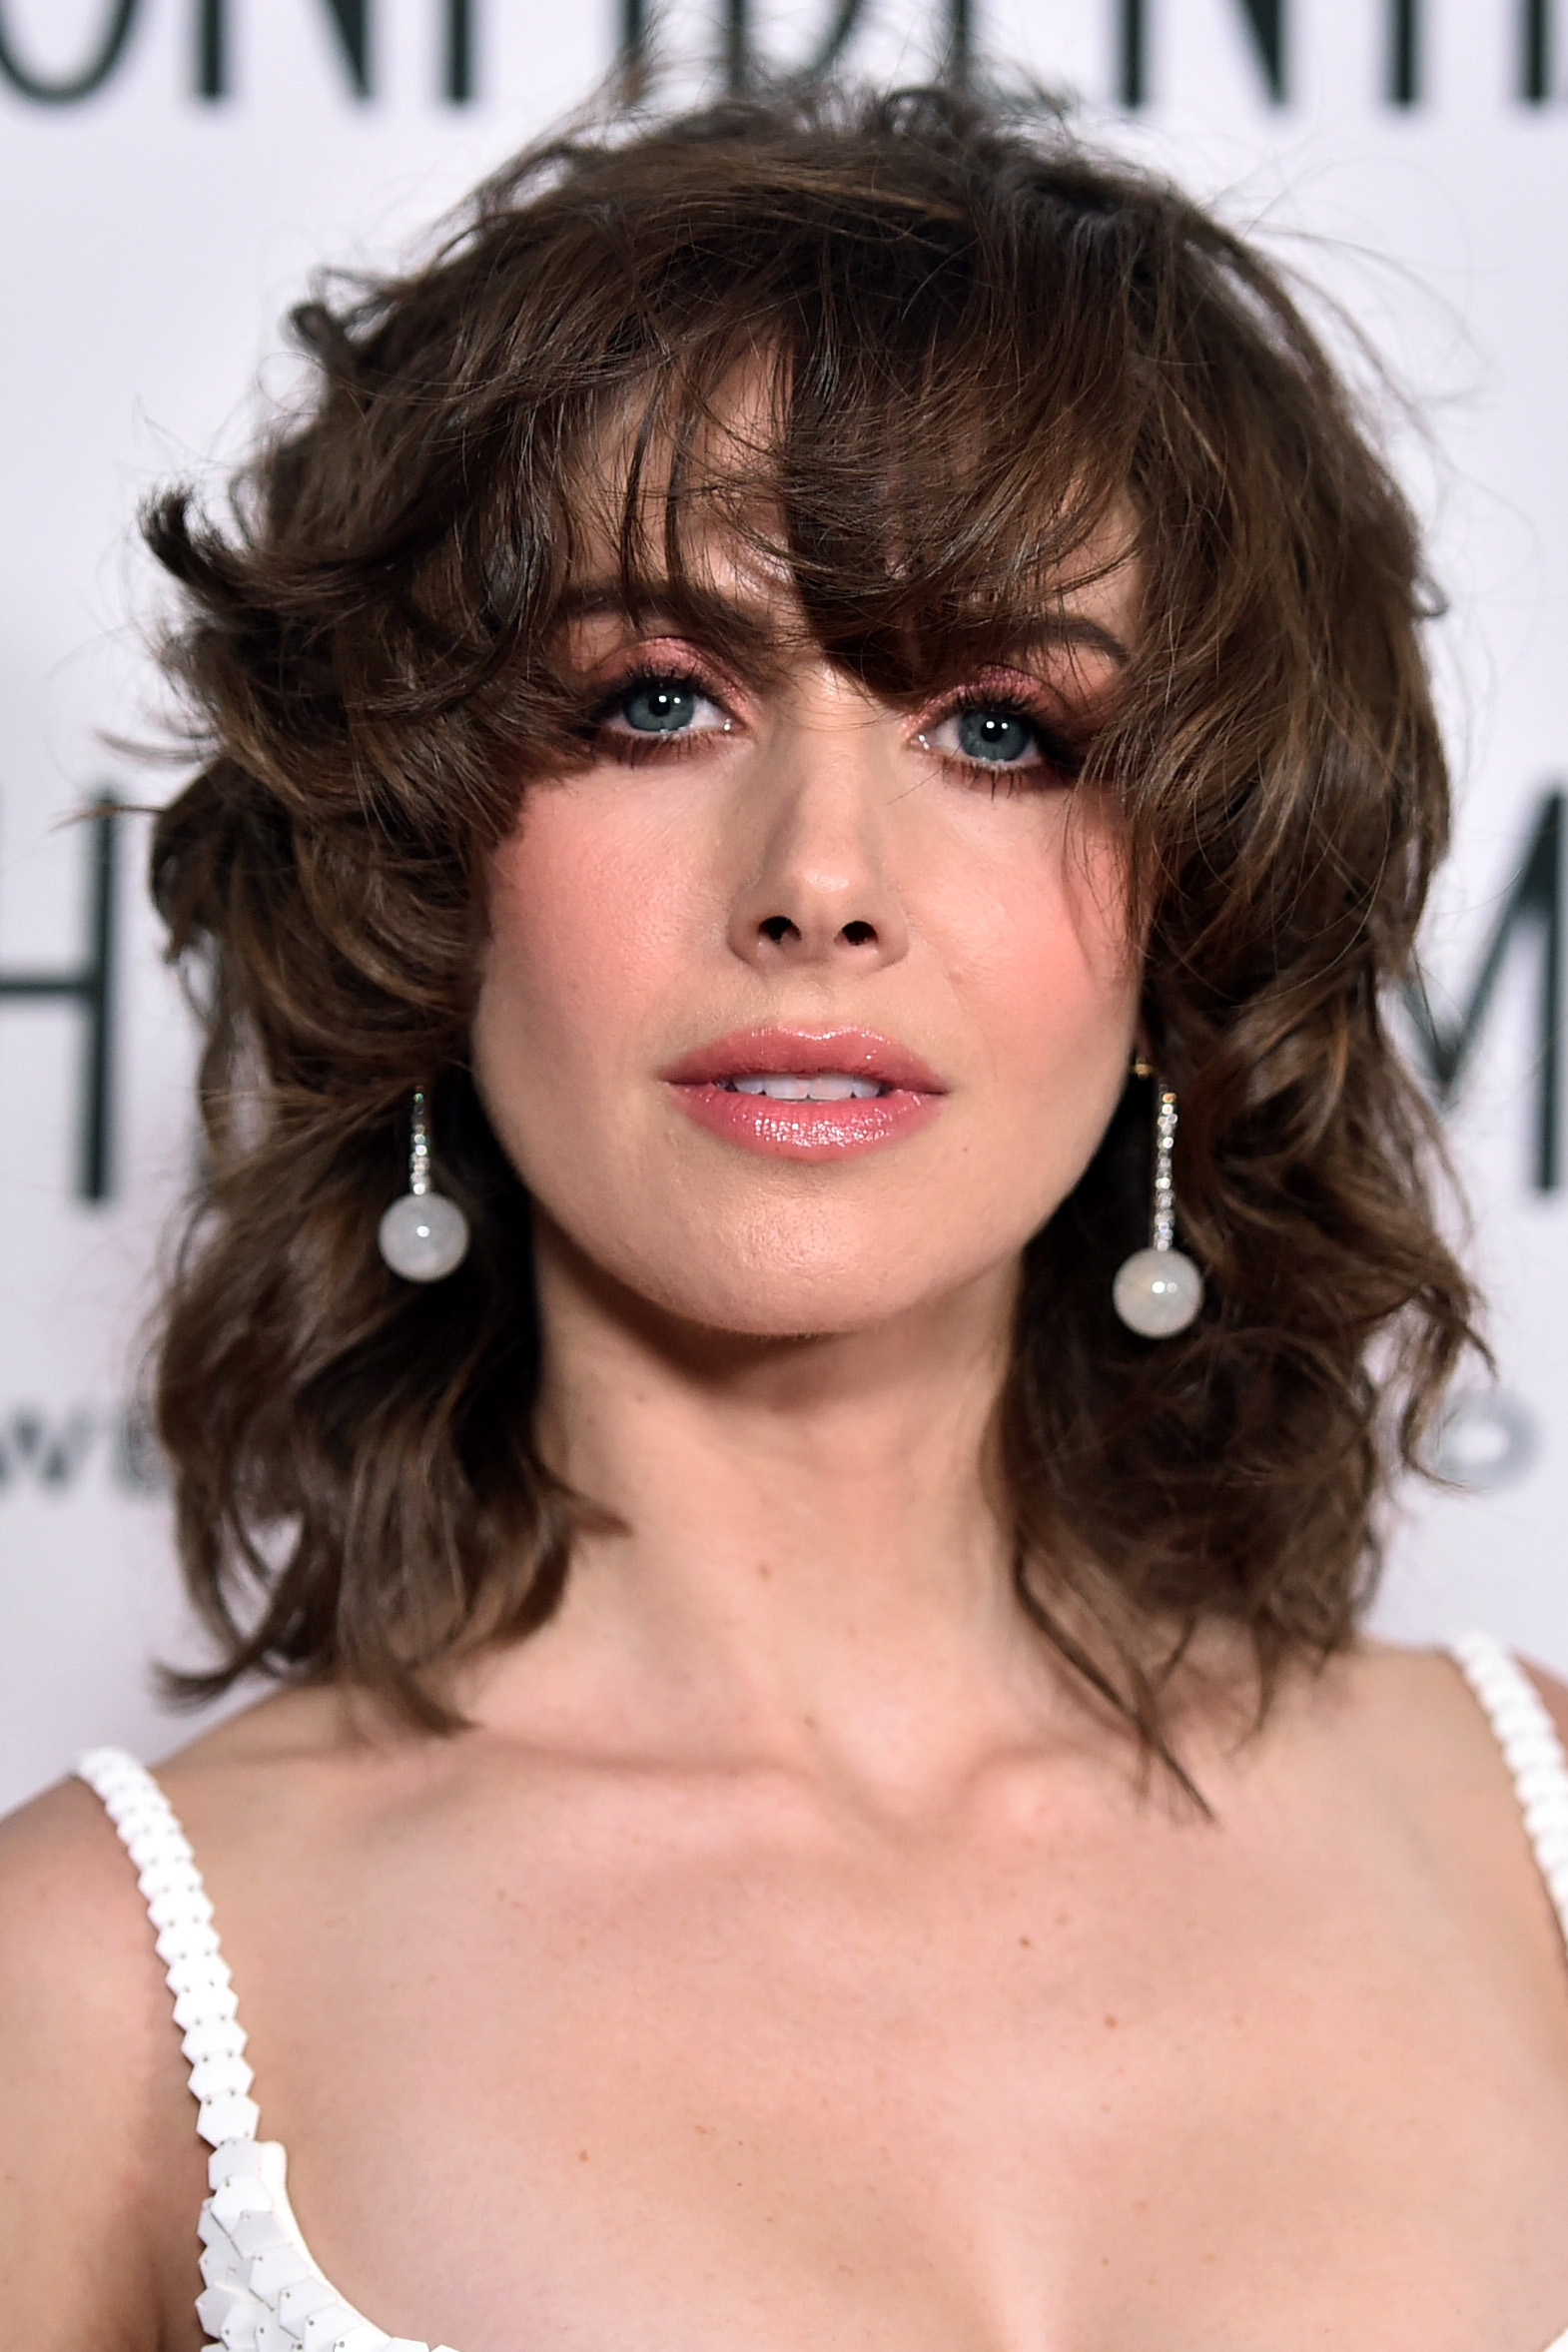 35 Best Hairstyles With Bangs - Photos of Celebrity Haircuts With ...